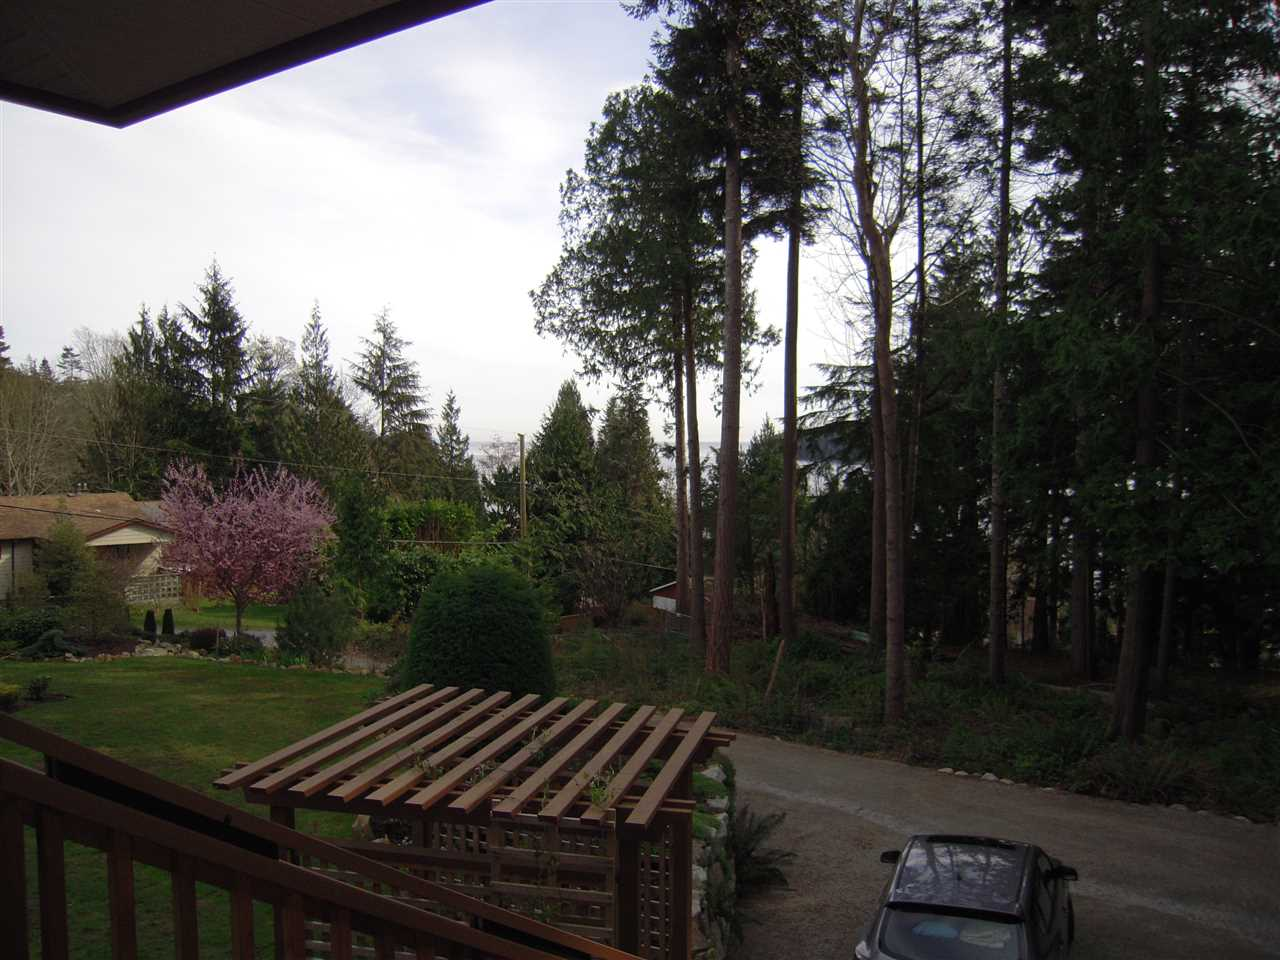 Photo 5: 5447 WAKEFIELD Road in Sechelt: Sechelt District House for sale (Sunshine Coast)  : MLS® # R2047962